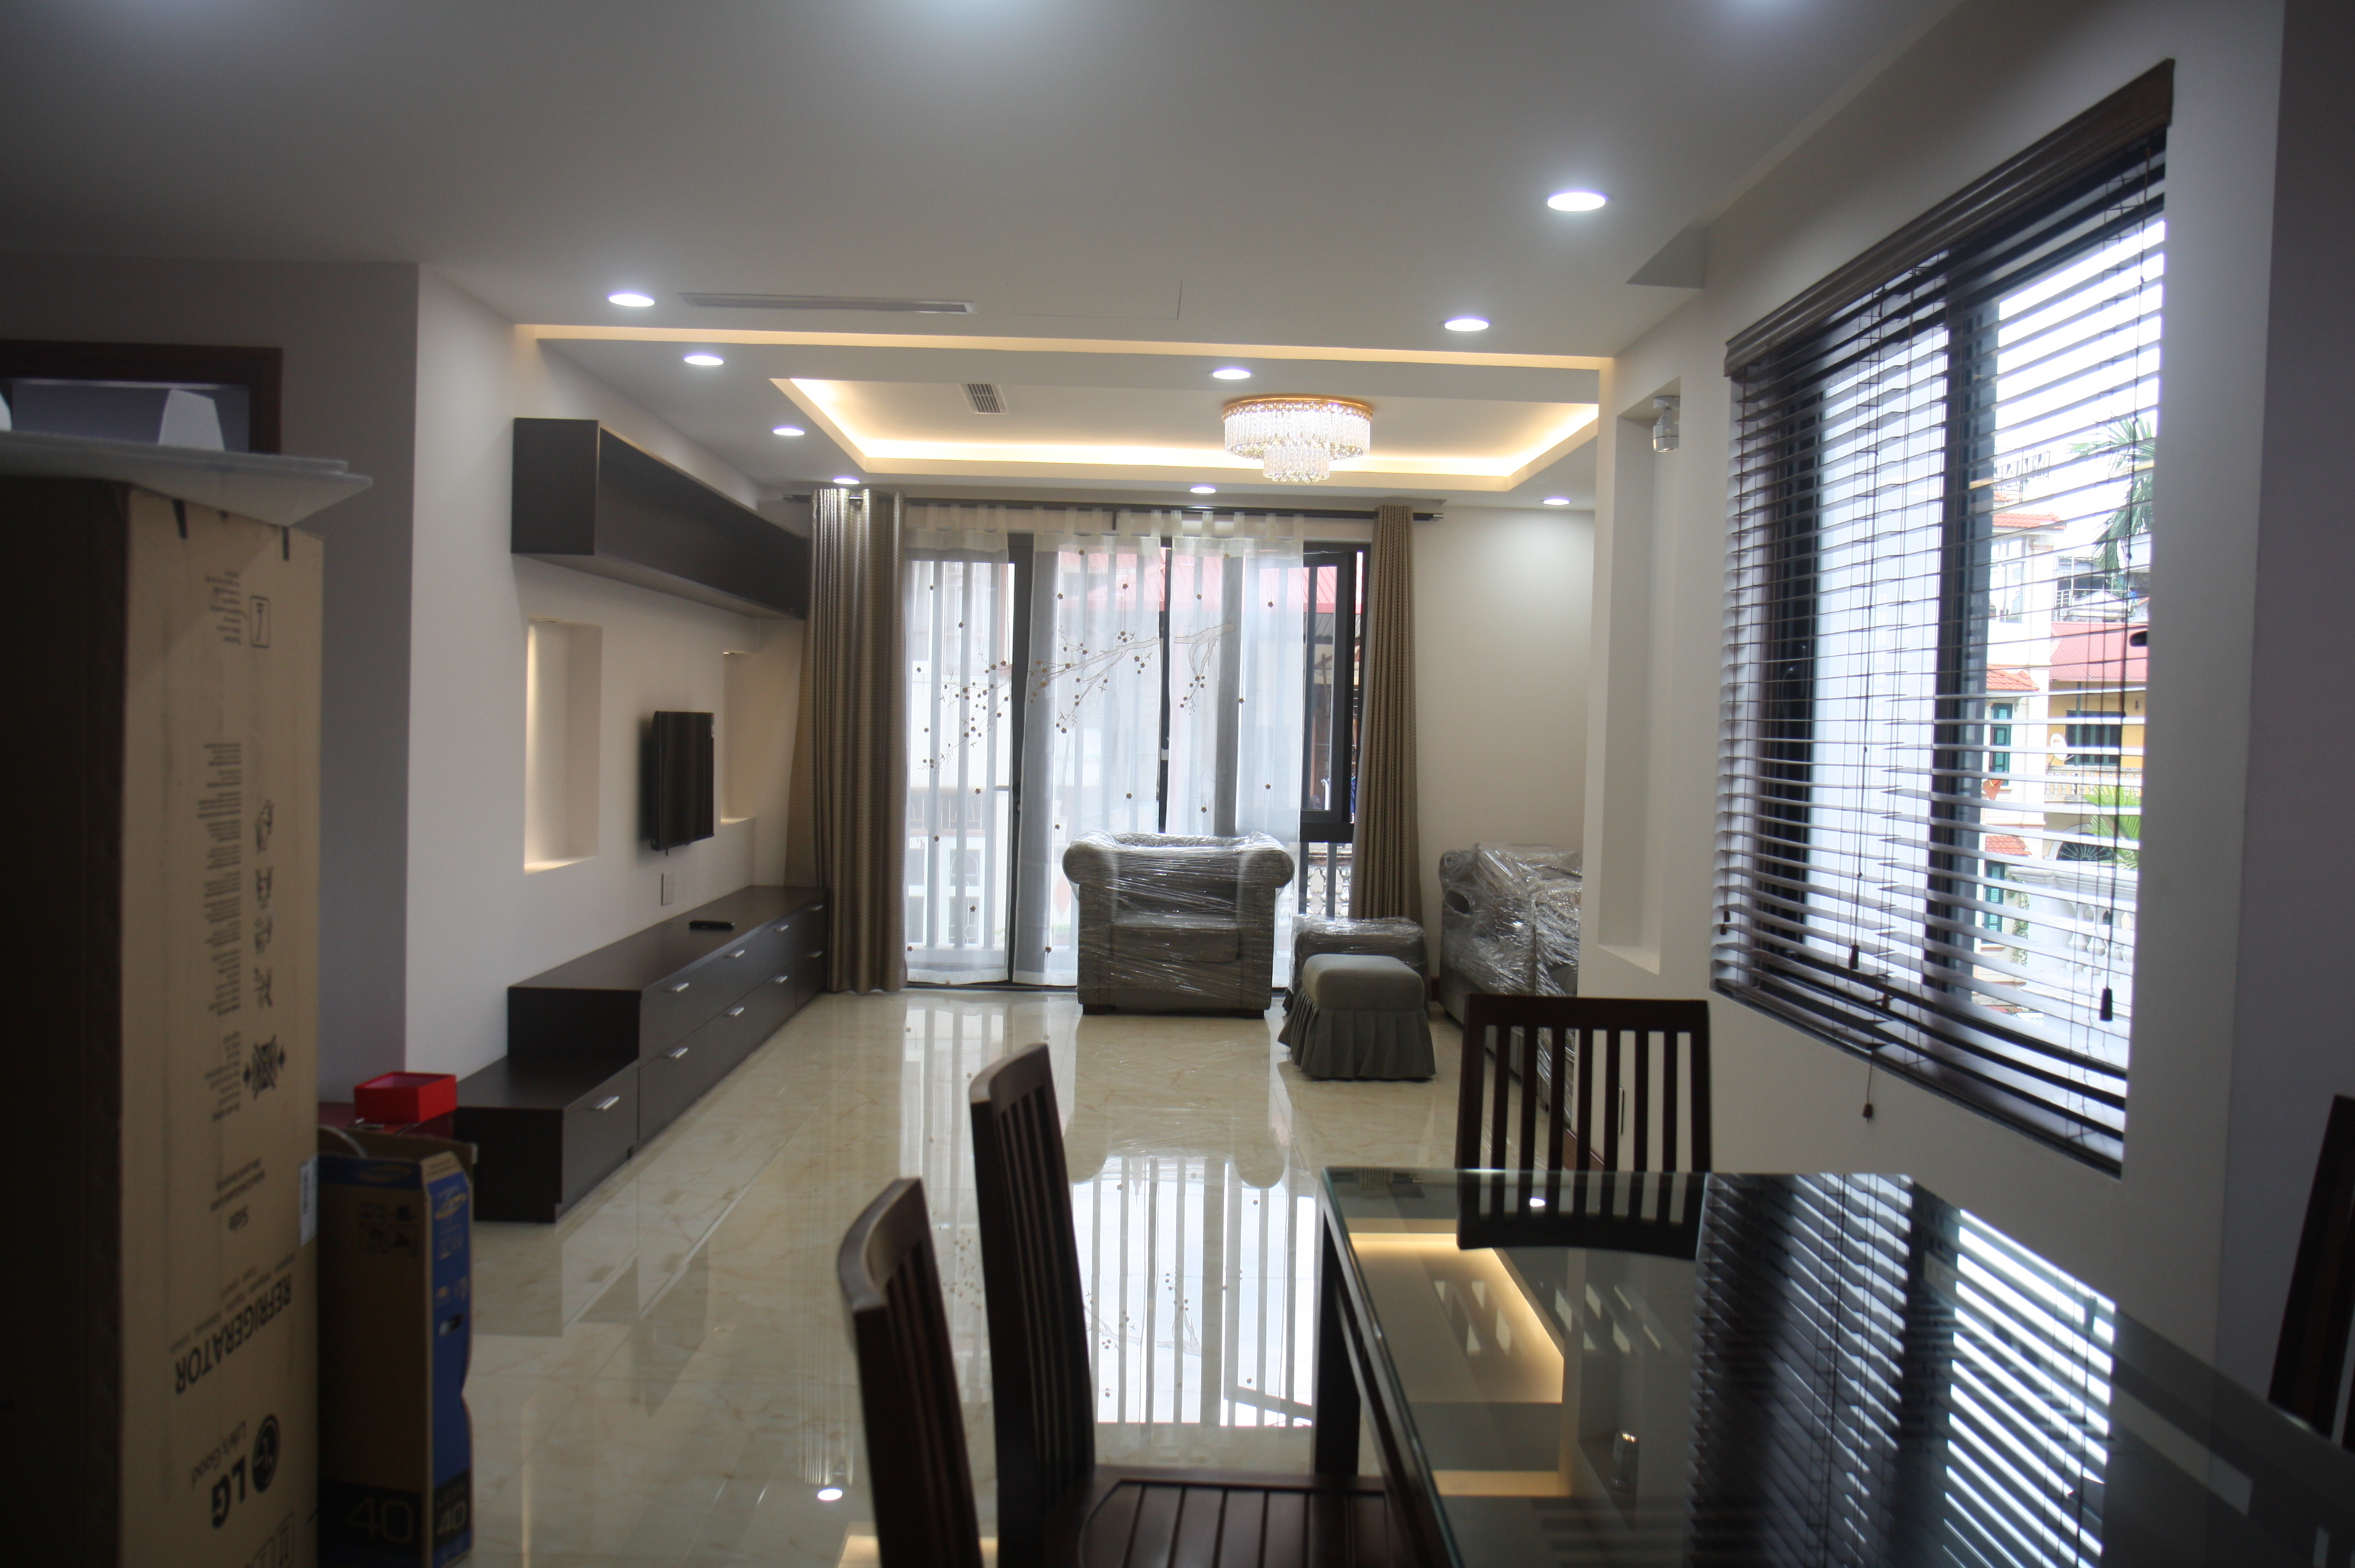 Brand new serviced apartment with 3 bedroom for rent in Trich Sai street, Tay Ho district, Hanoi.